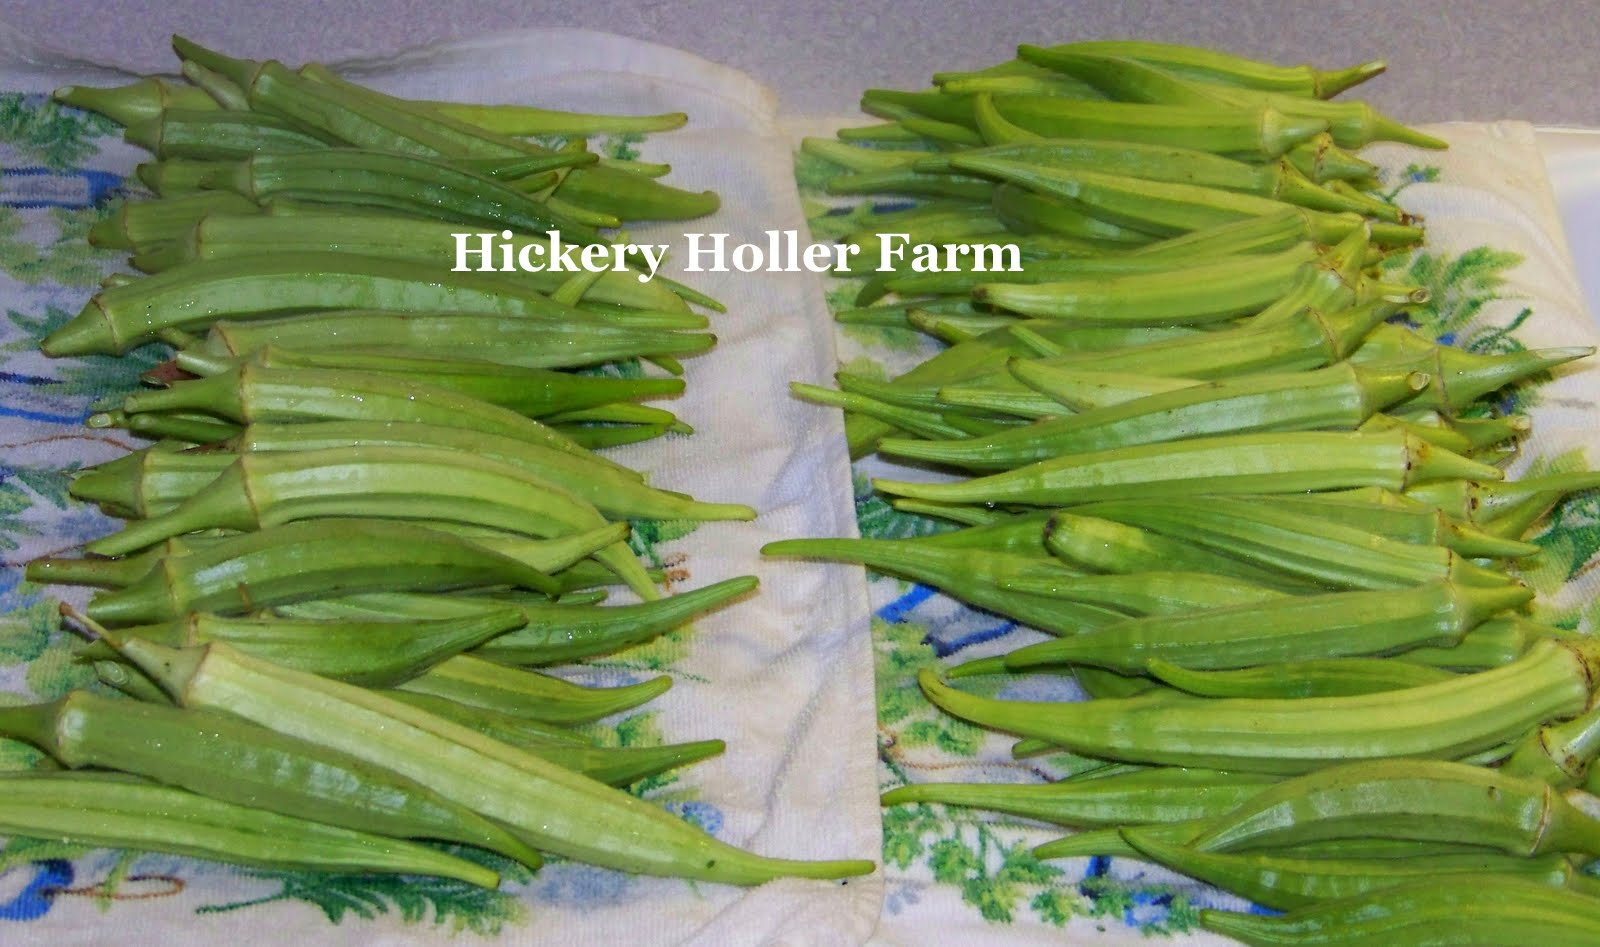 Hickery Holler Farm: Nothing Goes To Waste